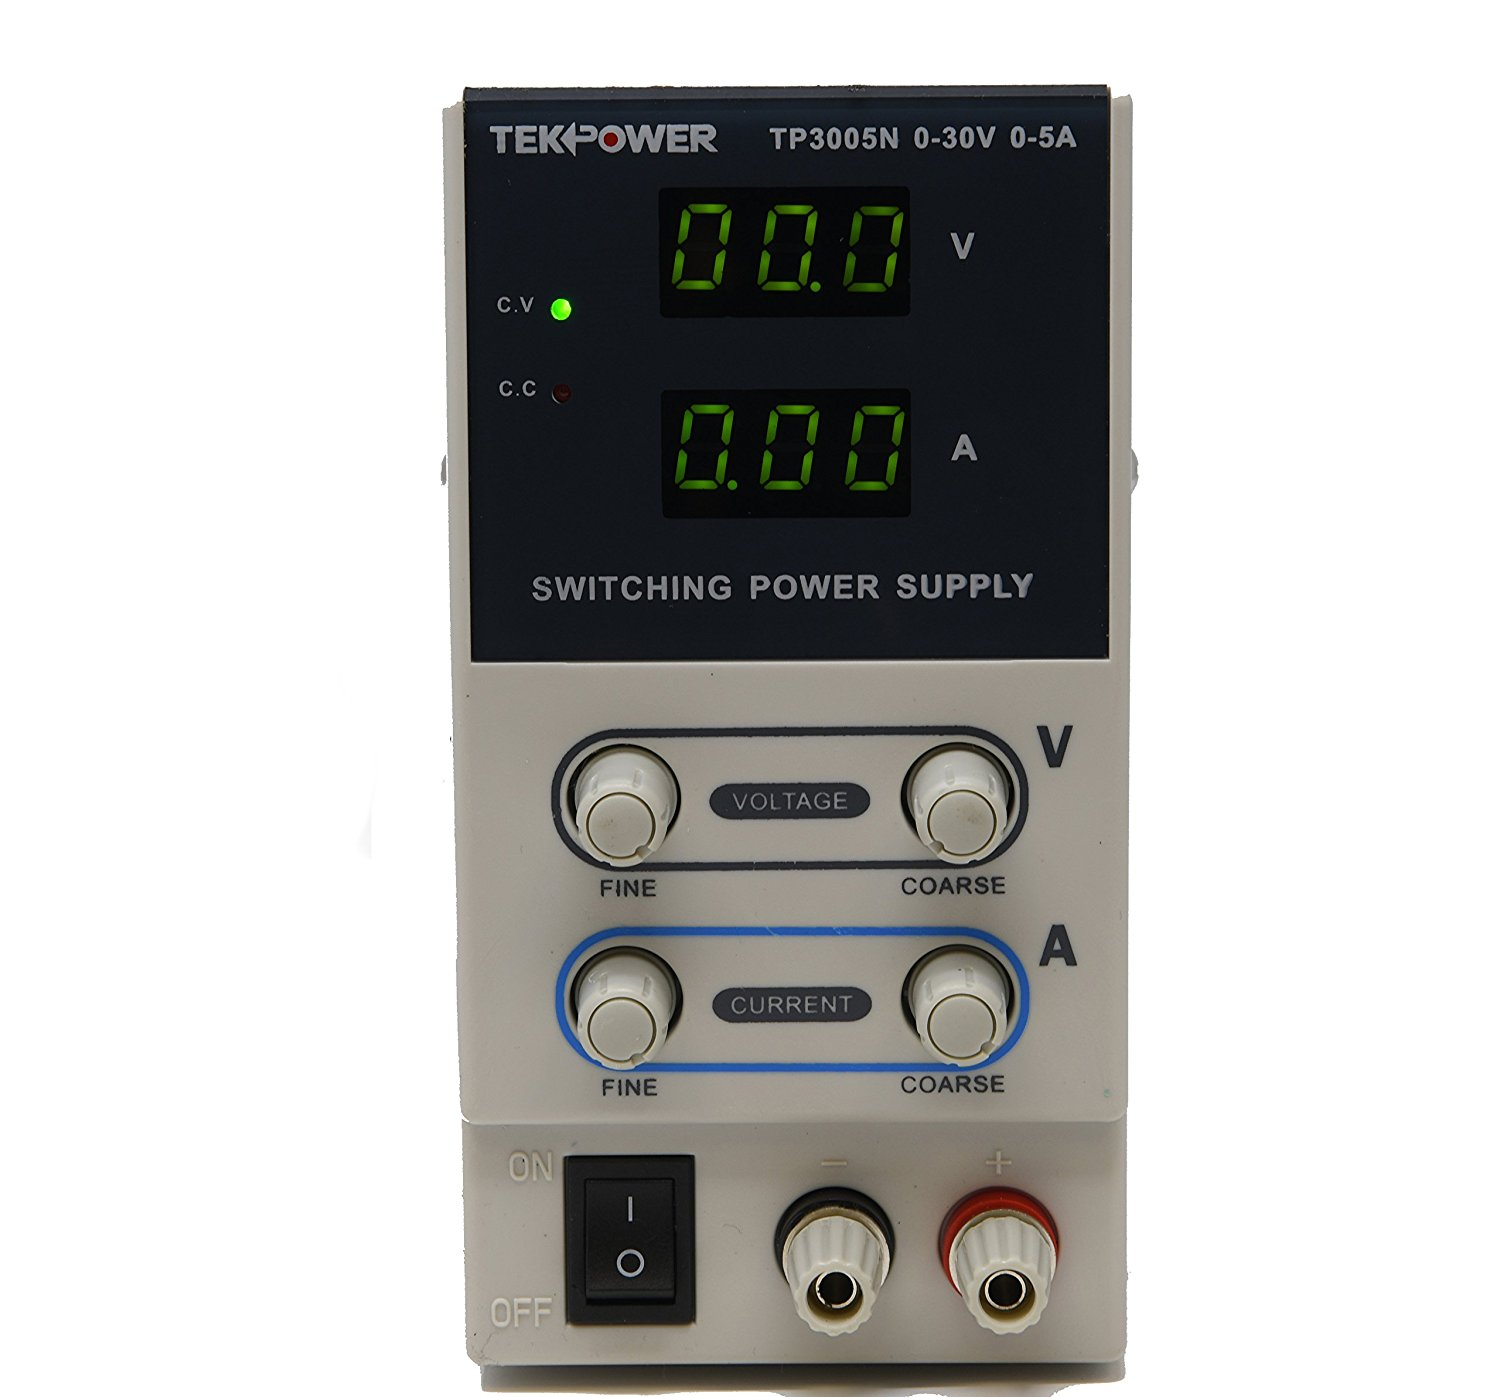 Tekpower TP3005N Regulated DC Variable Power Supply 0 - 30V at 0 - 5A